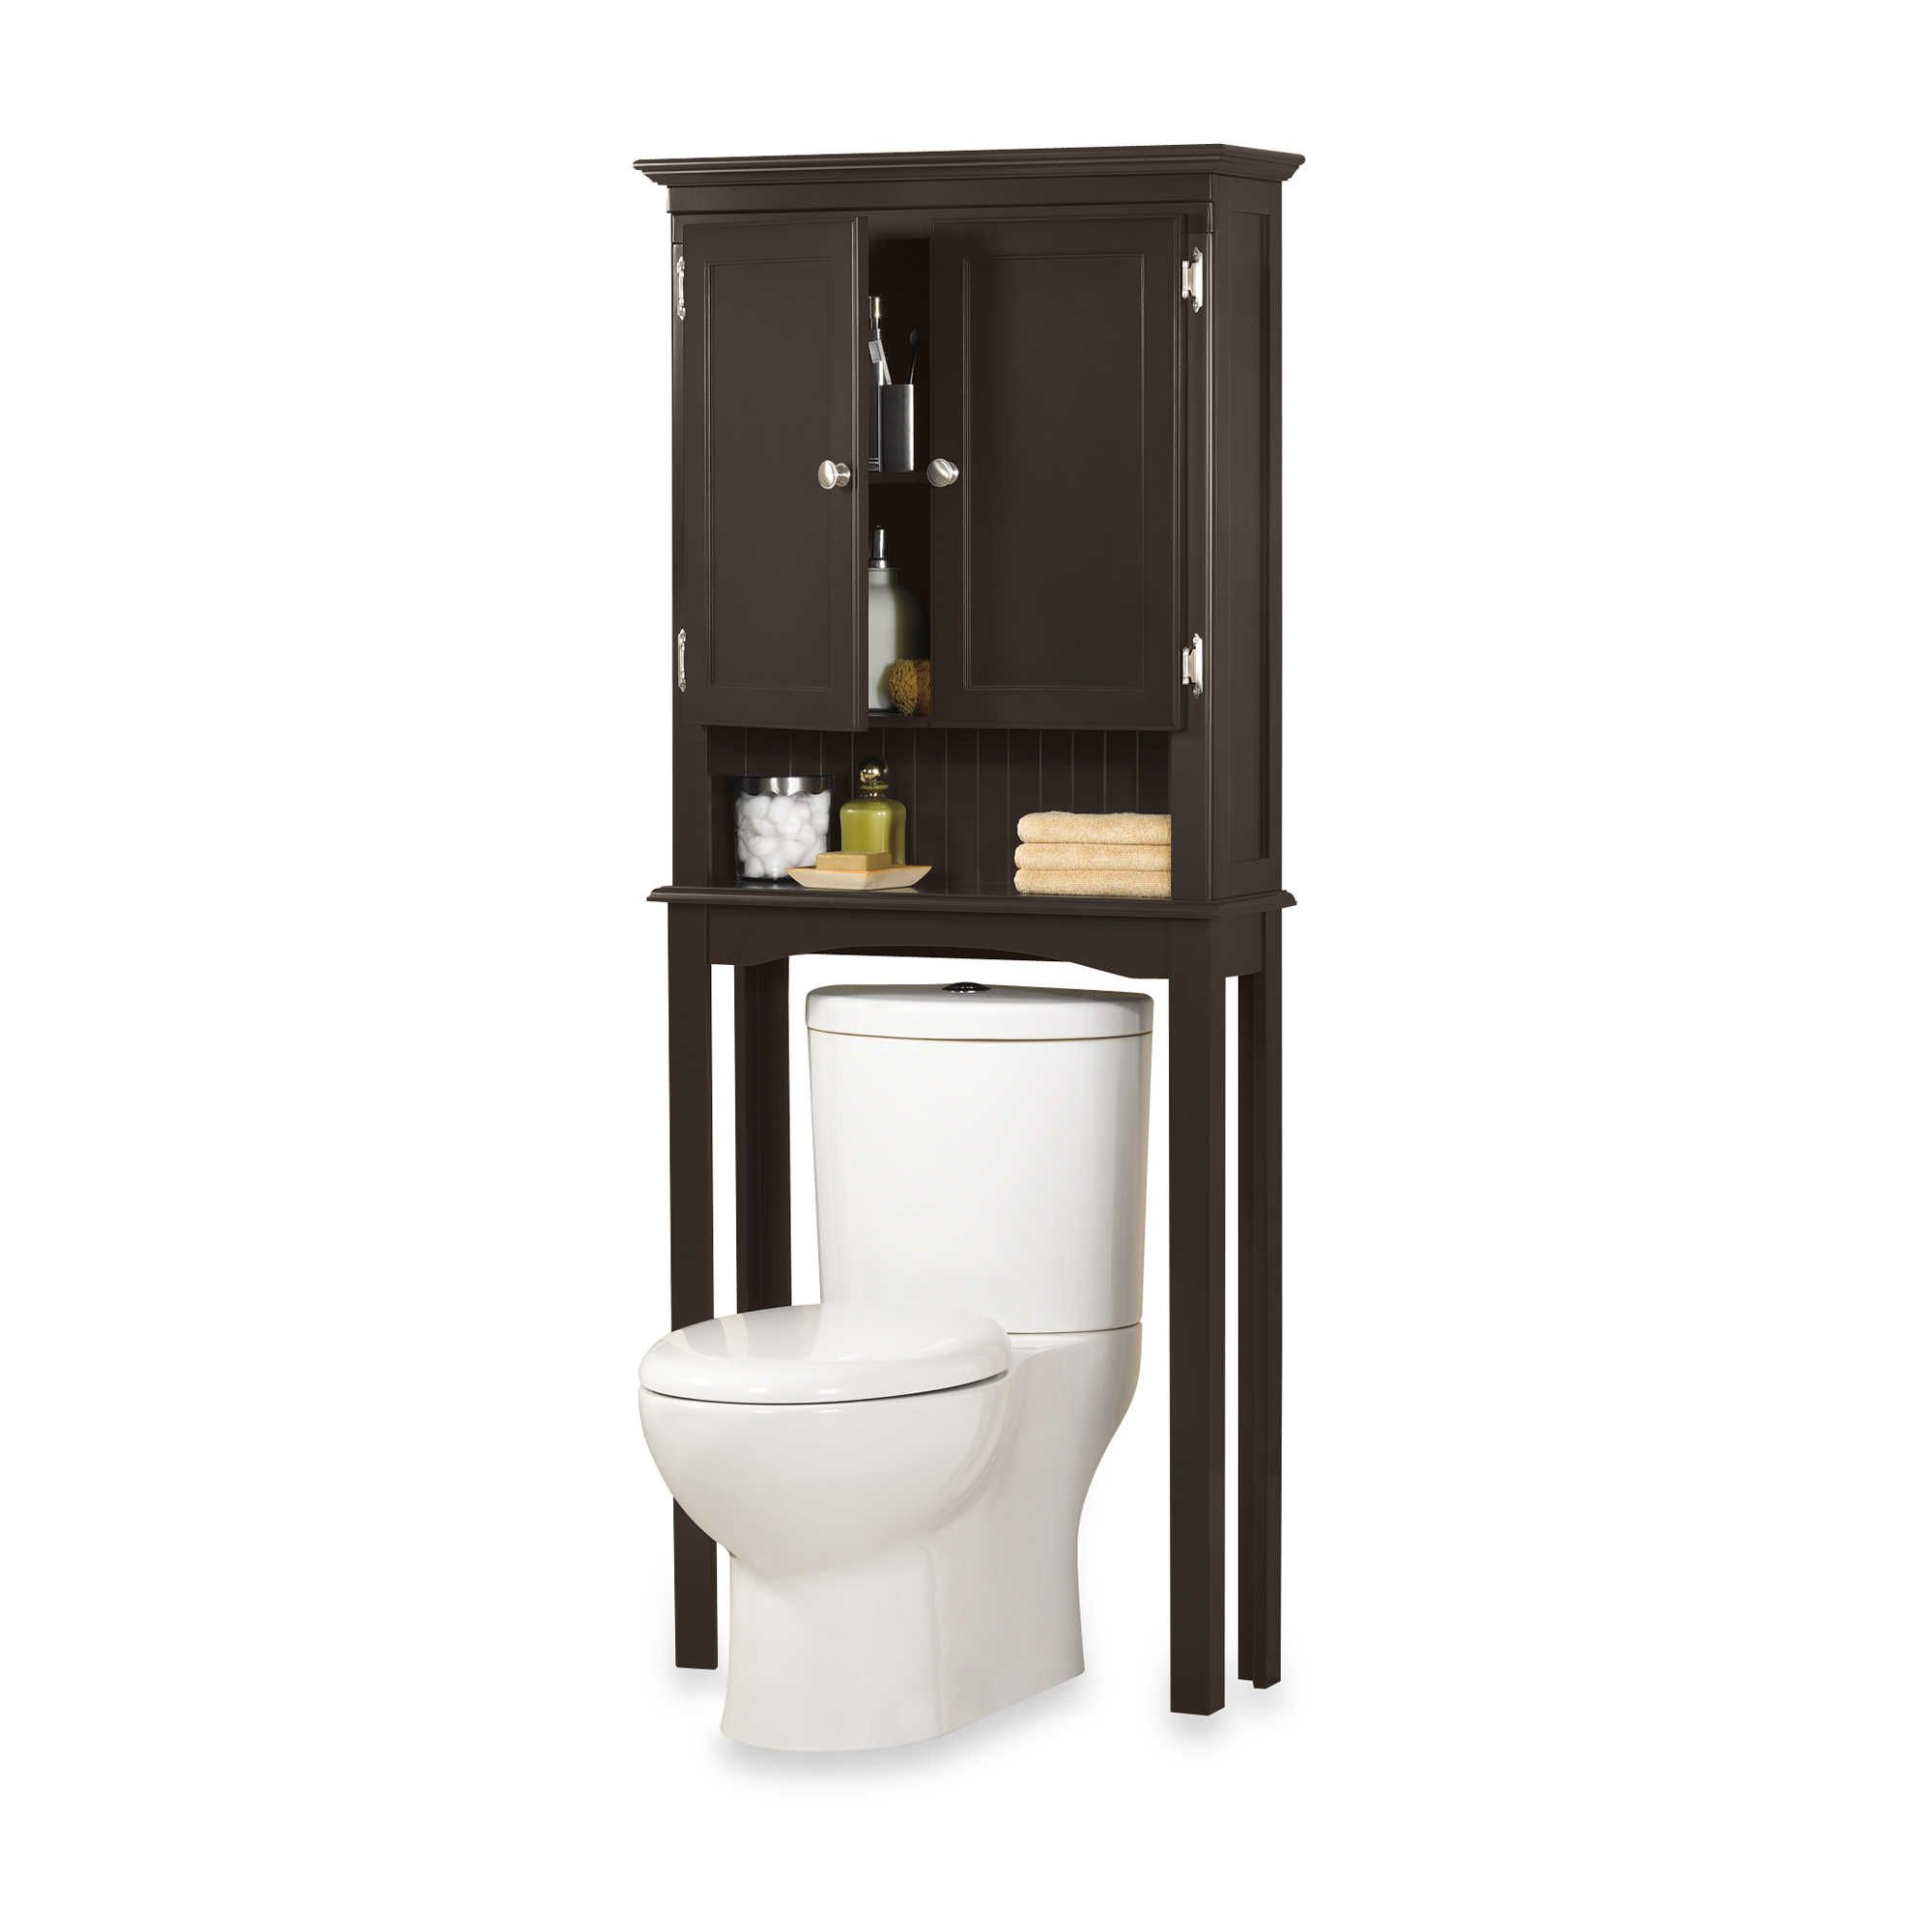 fairmont espresso space saver bathroom cabinet - Bathroom Cabinets Space Saver